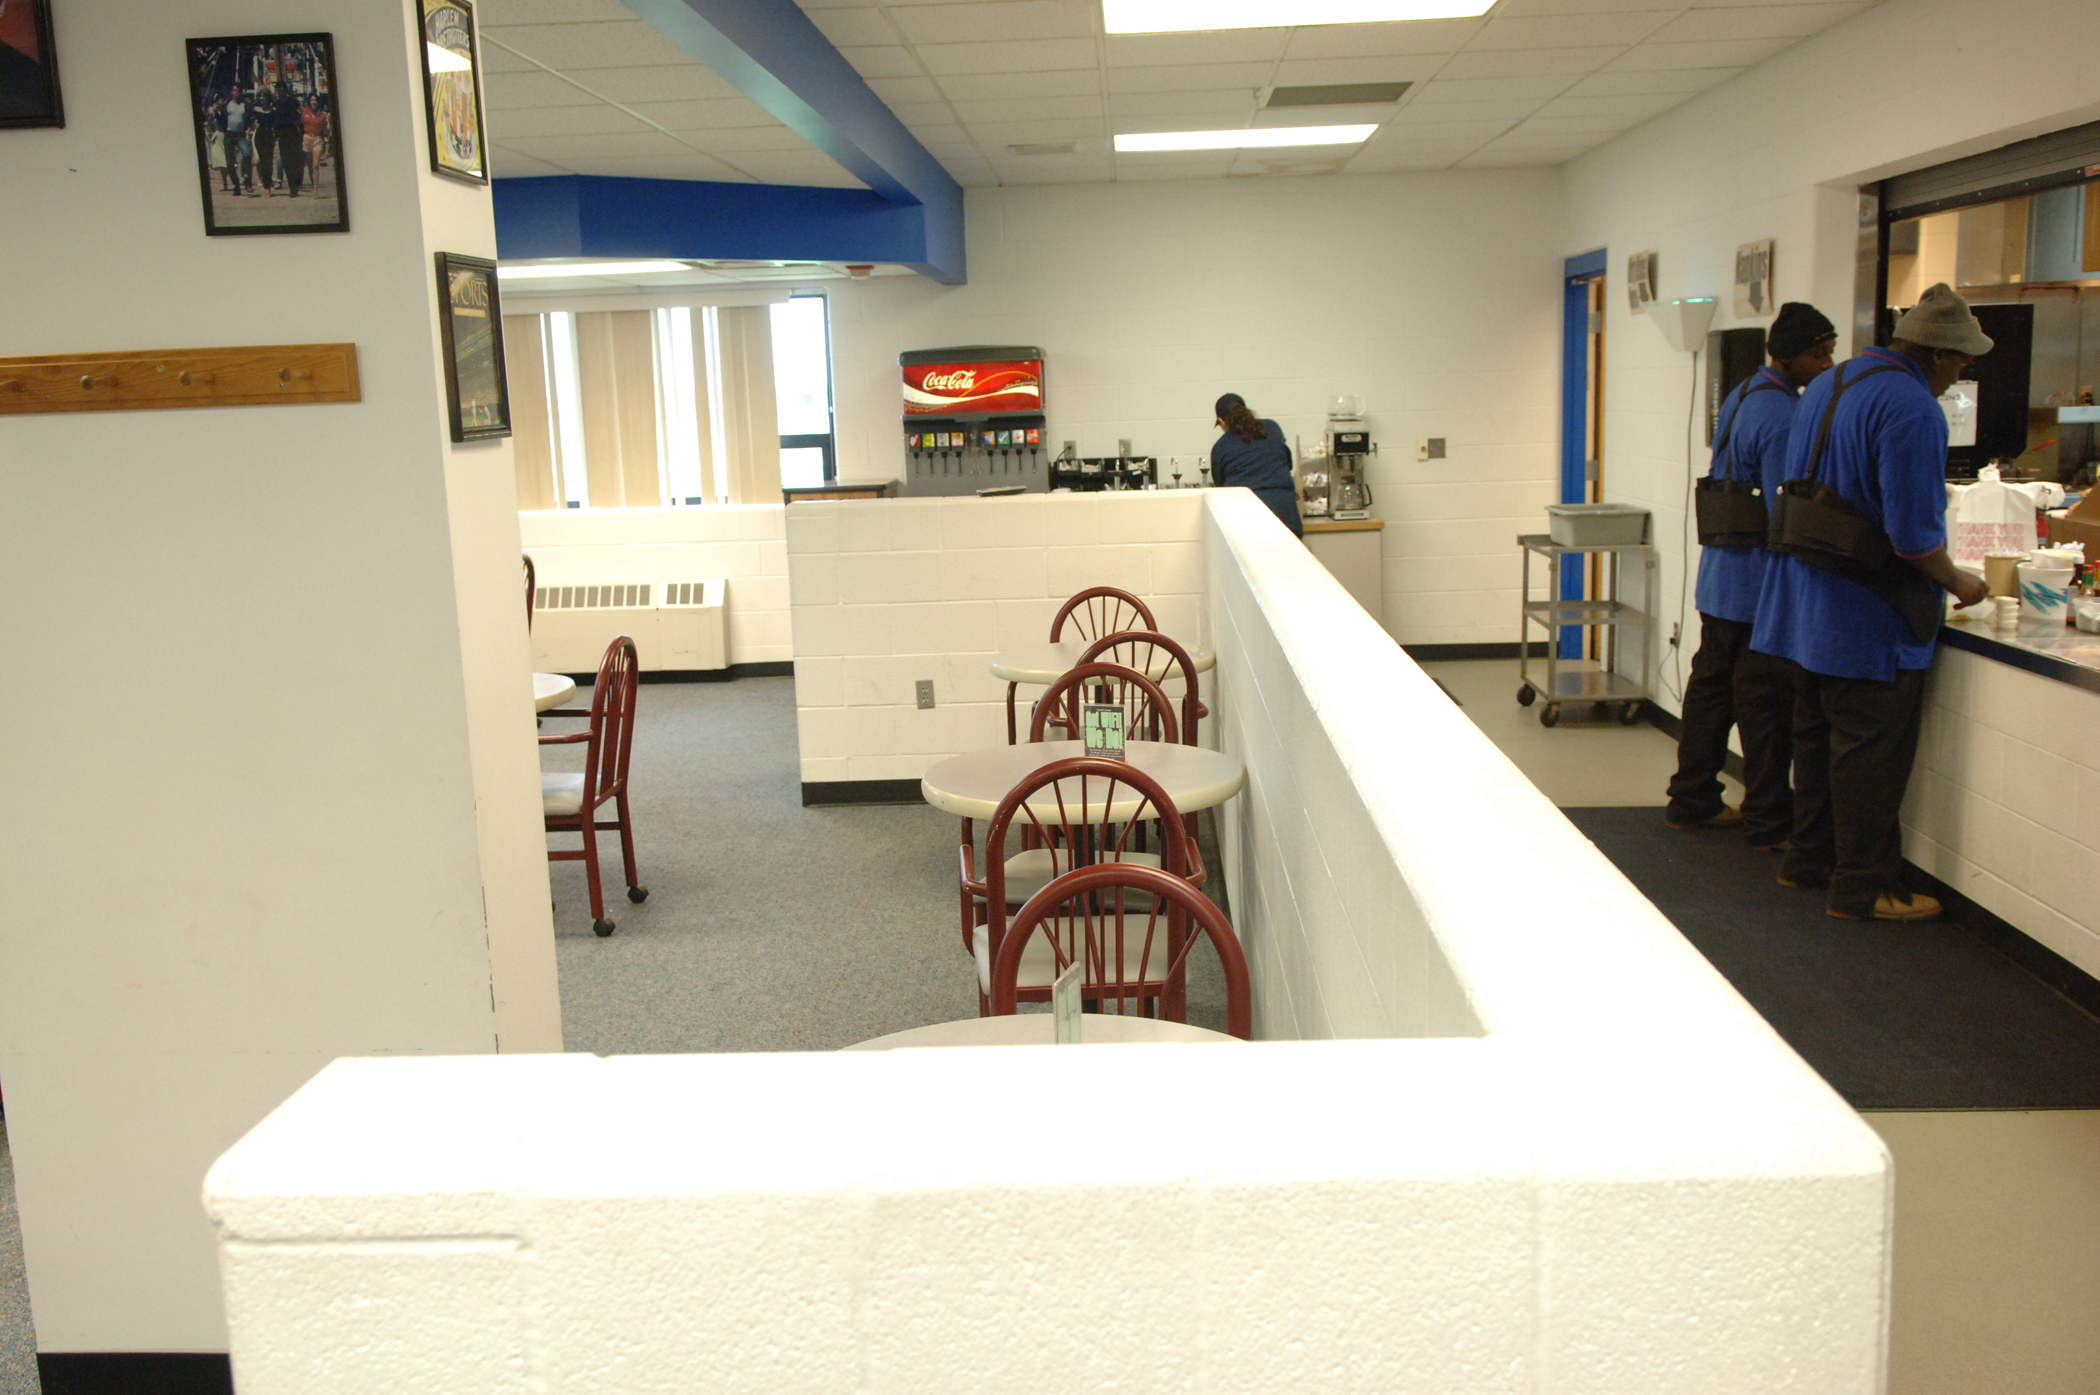 Bandit Lanes improves facility, experience > Ellsworth Air Force ...